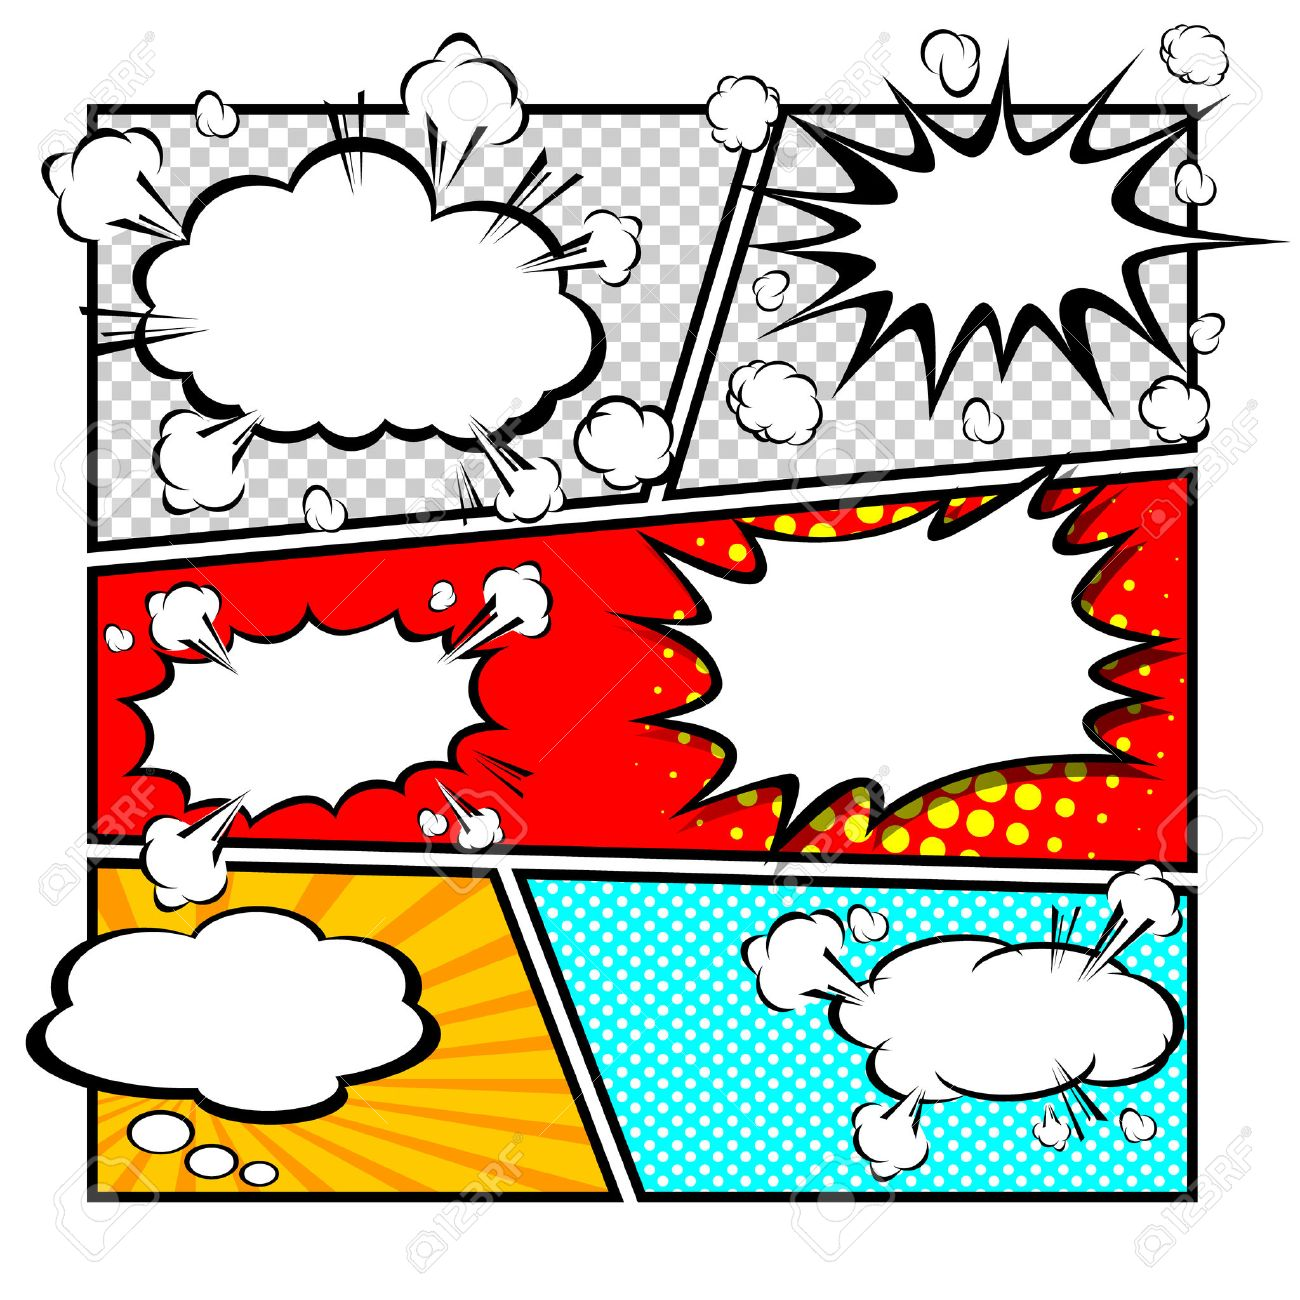 Comic Template Vector Royalty Free Cliparts, Vectors, And Stock ...